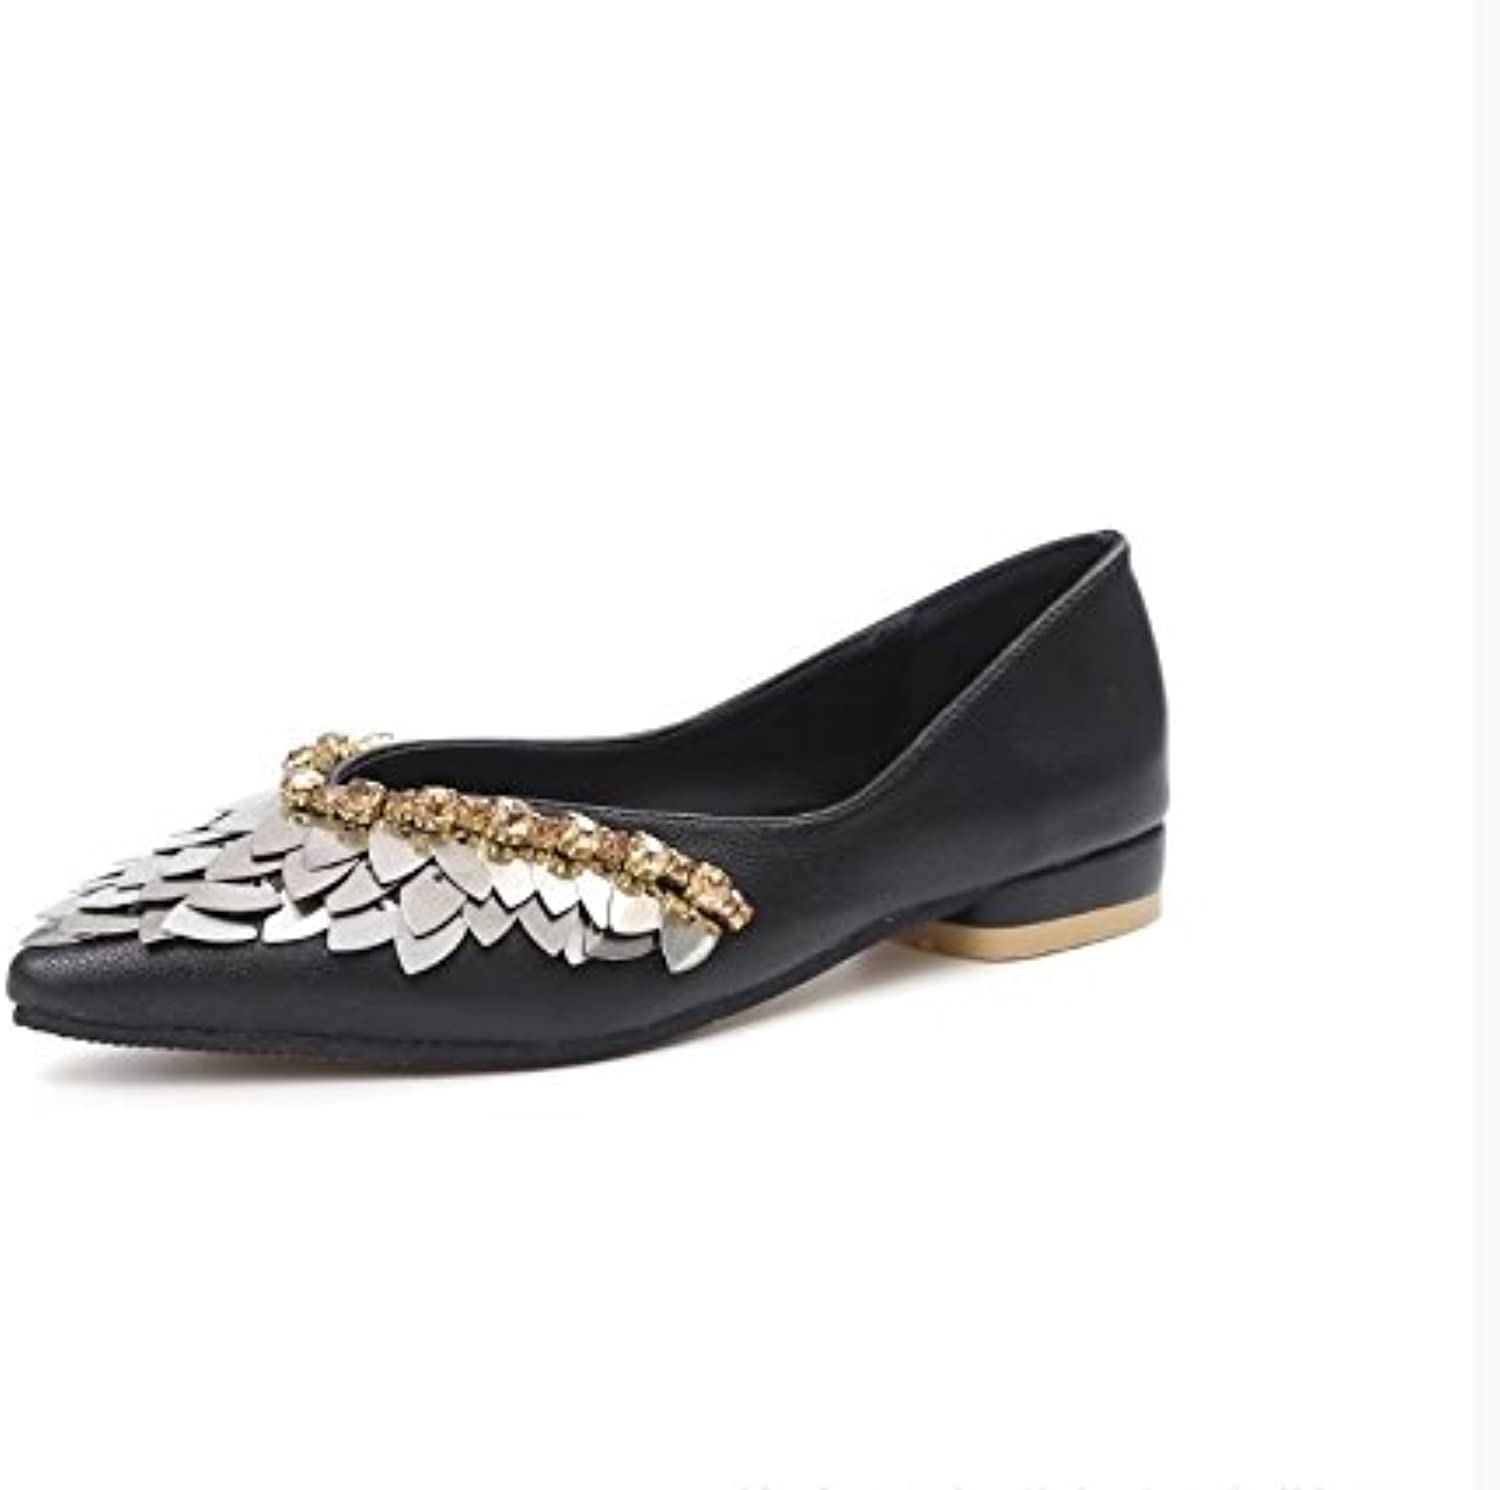 WYMBS Autumn and Winter Gifts Women's shoes Women's coarse Merchandiser shoes, Pointed Diamond, Sequins, Single shoes